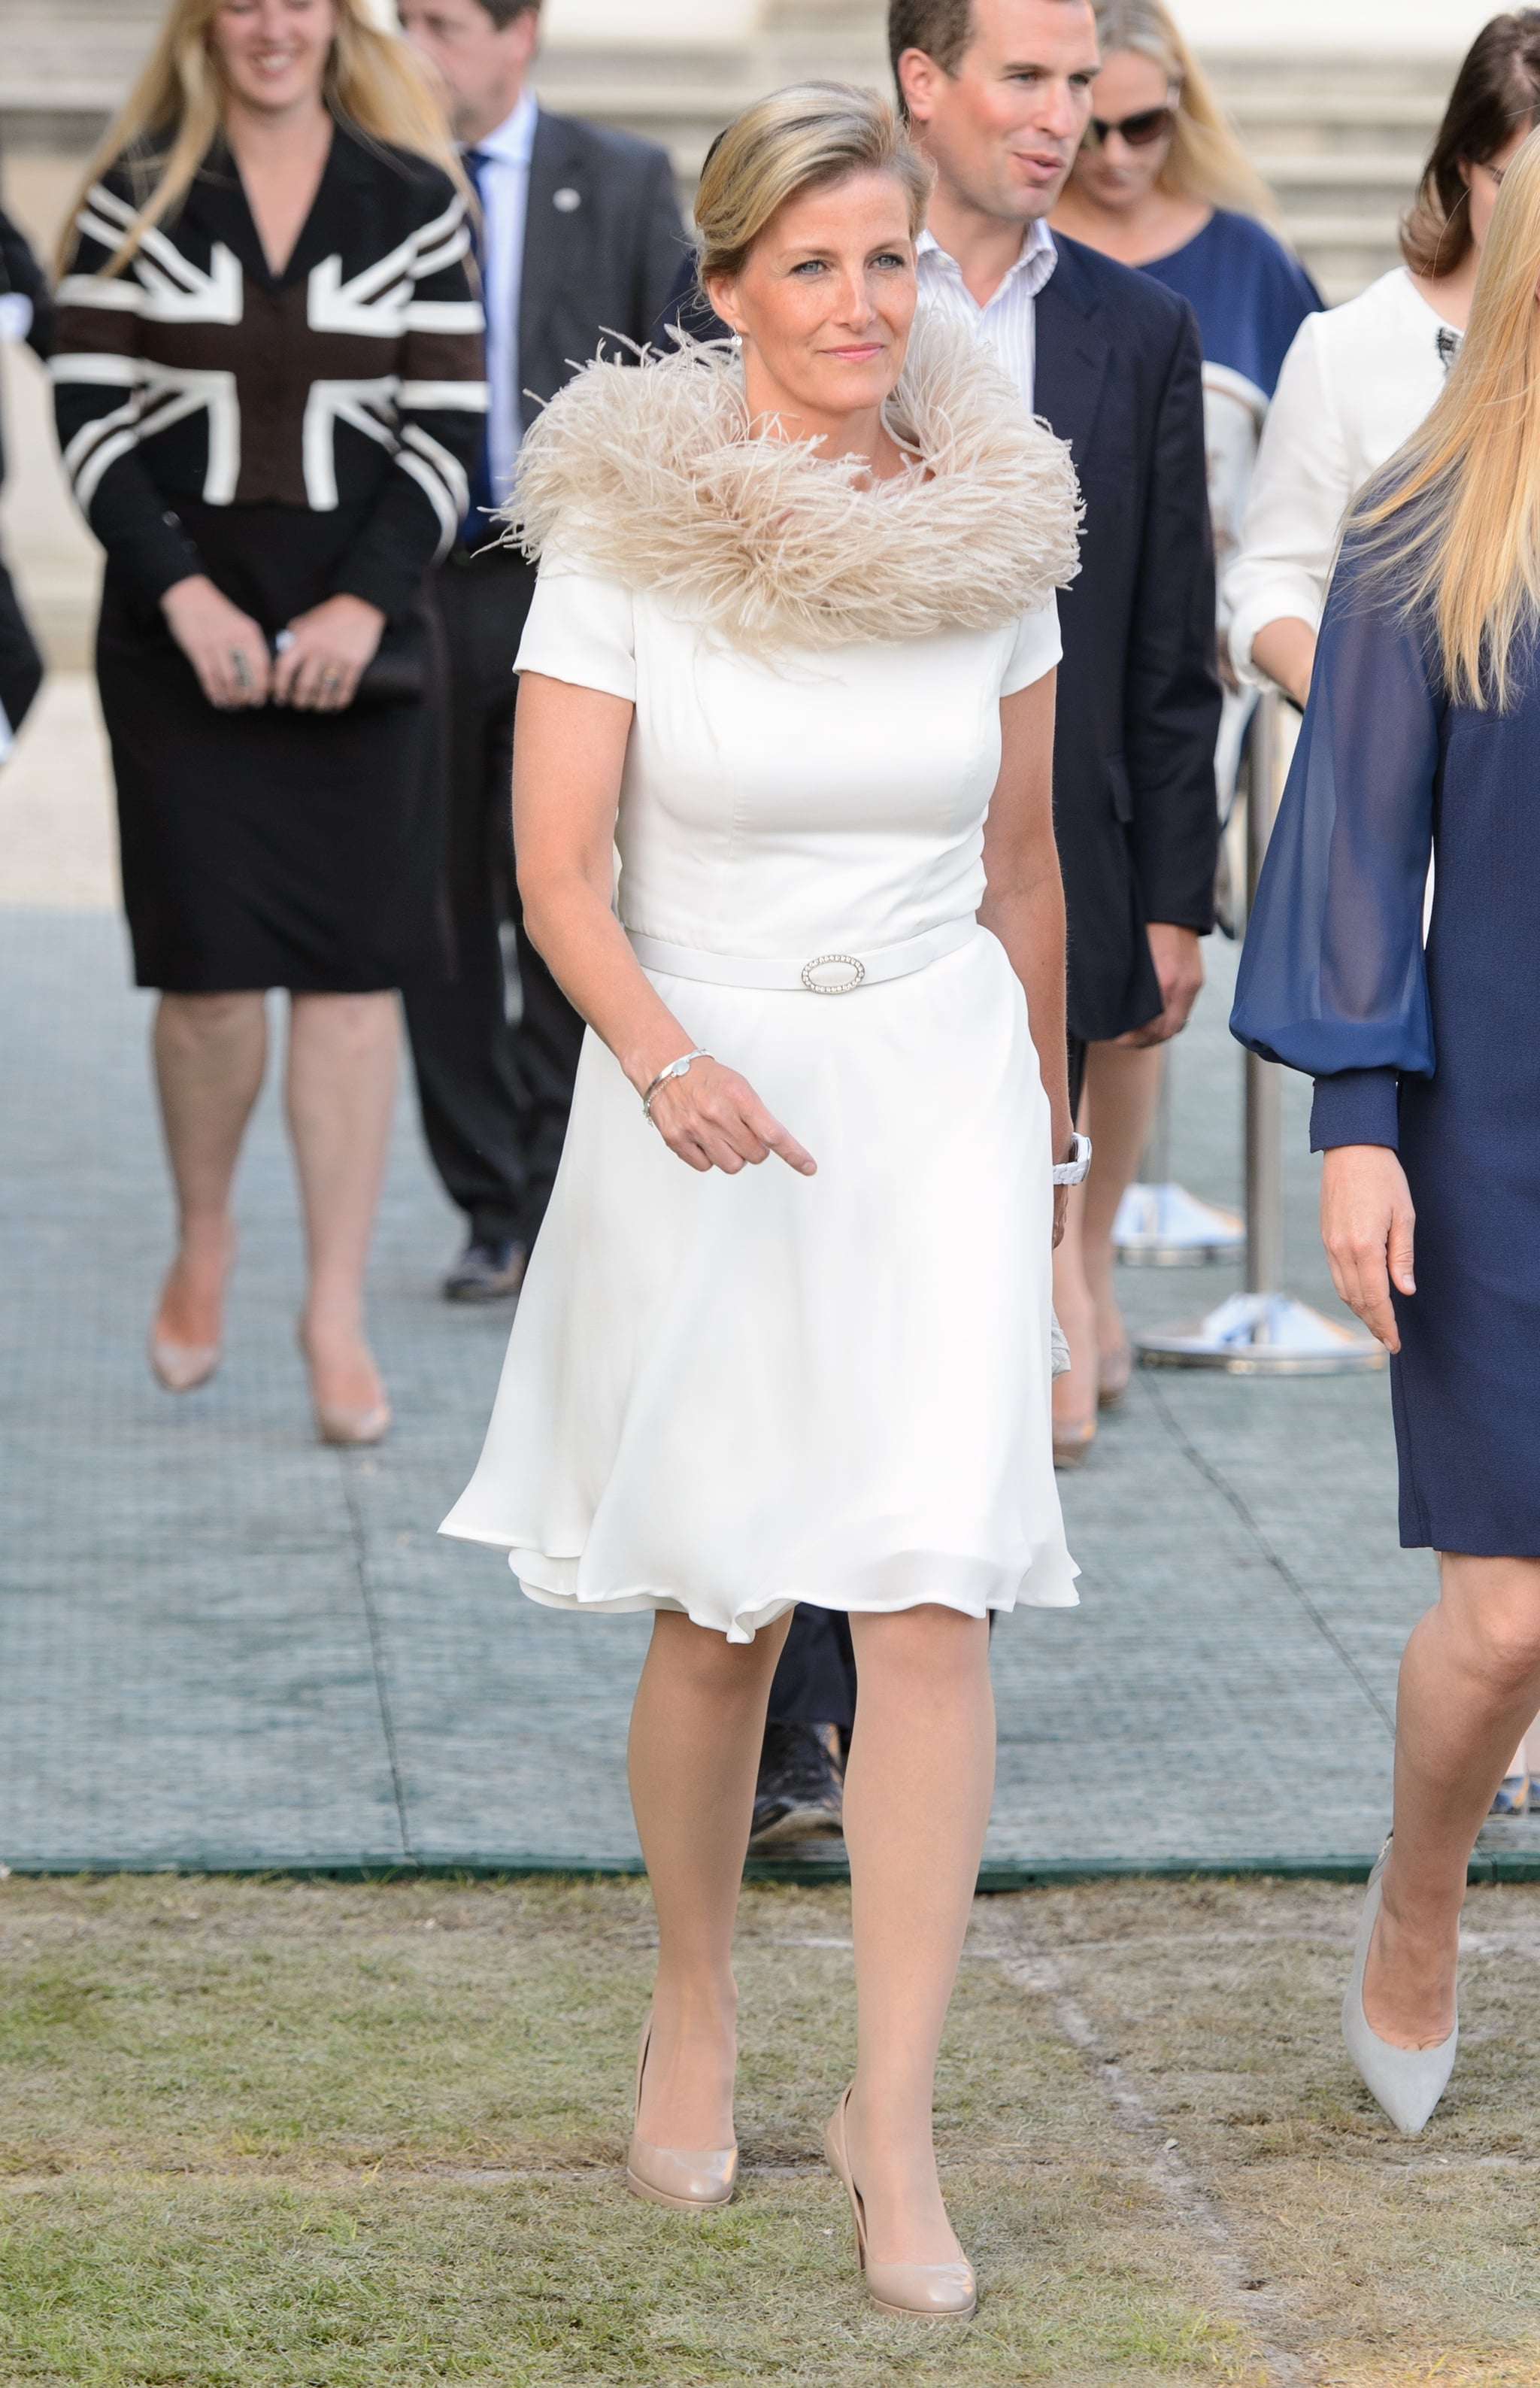 Sophie, Countess of Wessex, attended the gala at Buckingham Palace.